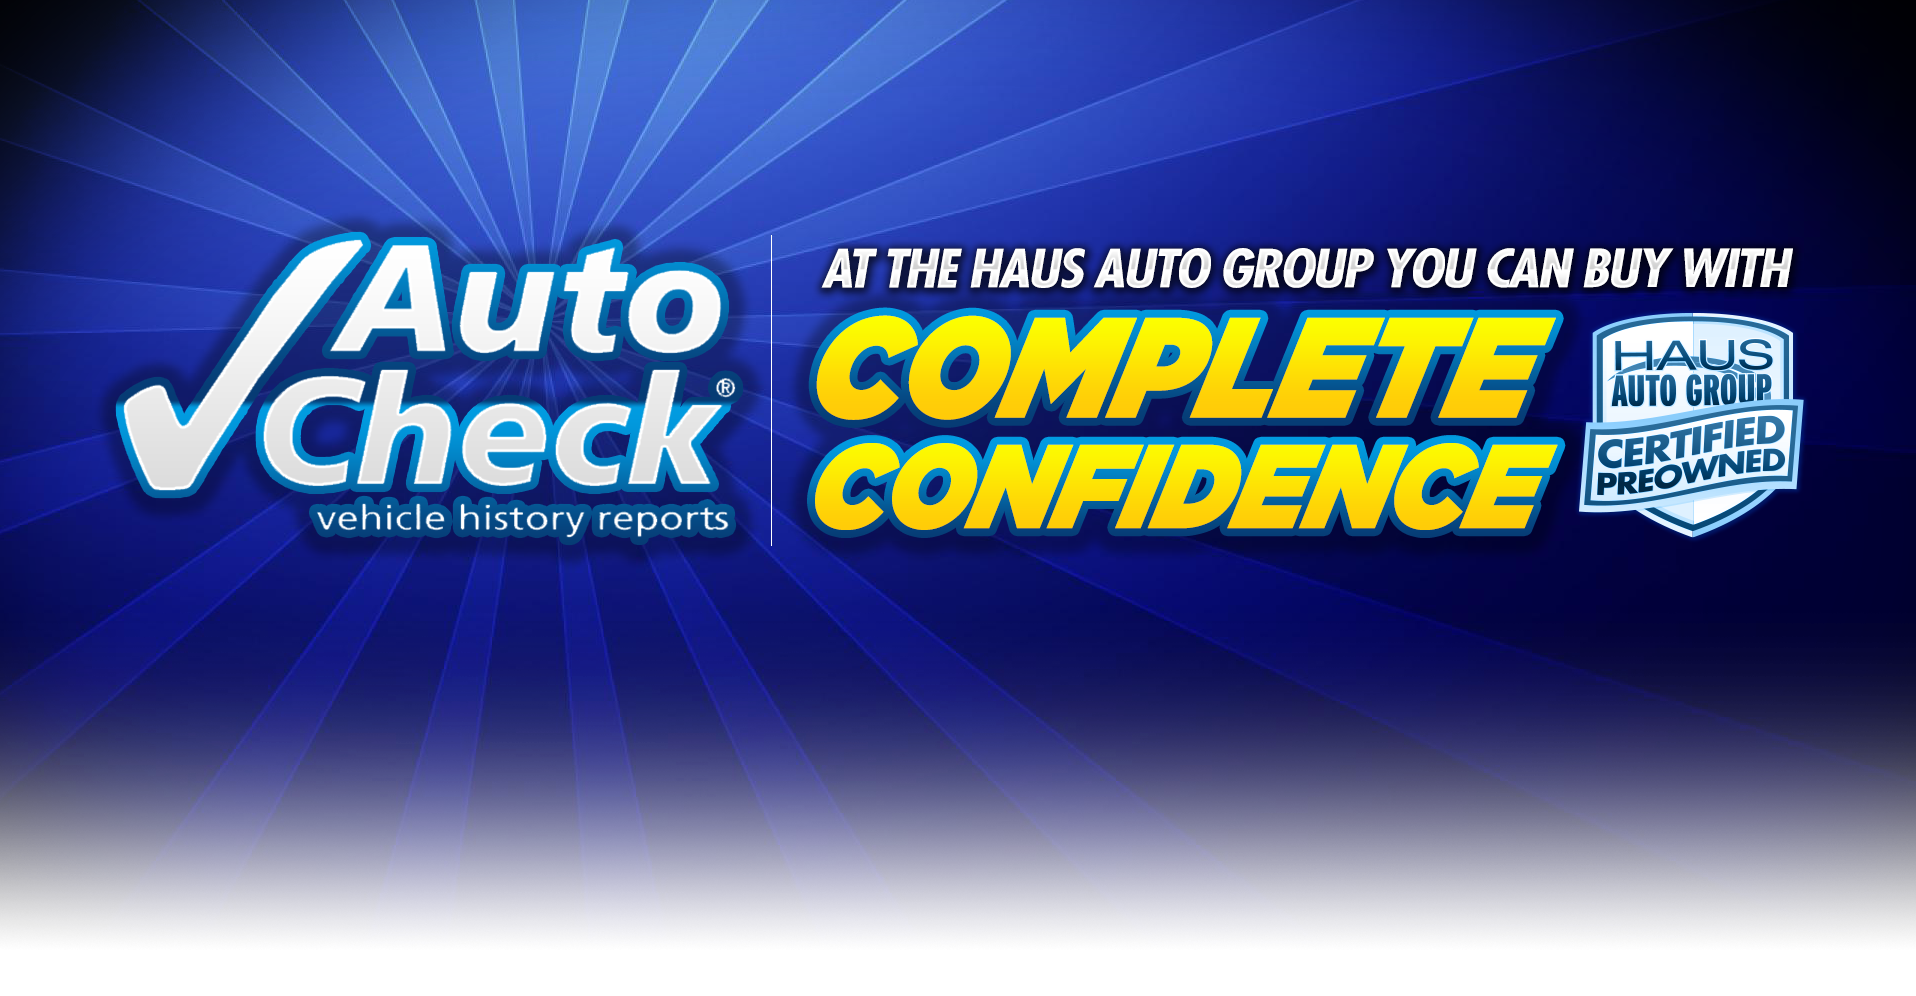 Haus Auto Group | Used Car Dealer in Canfield